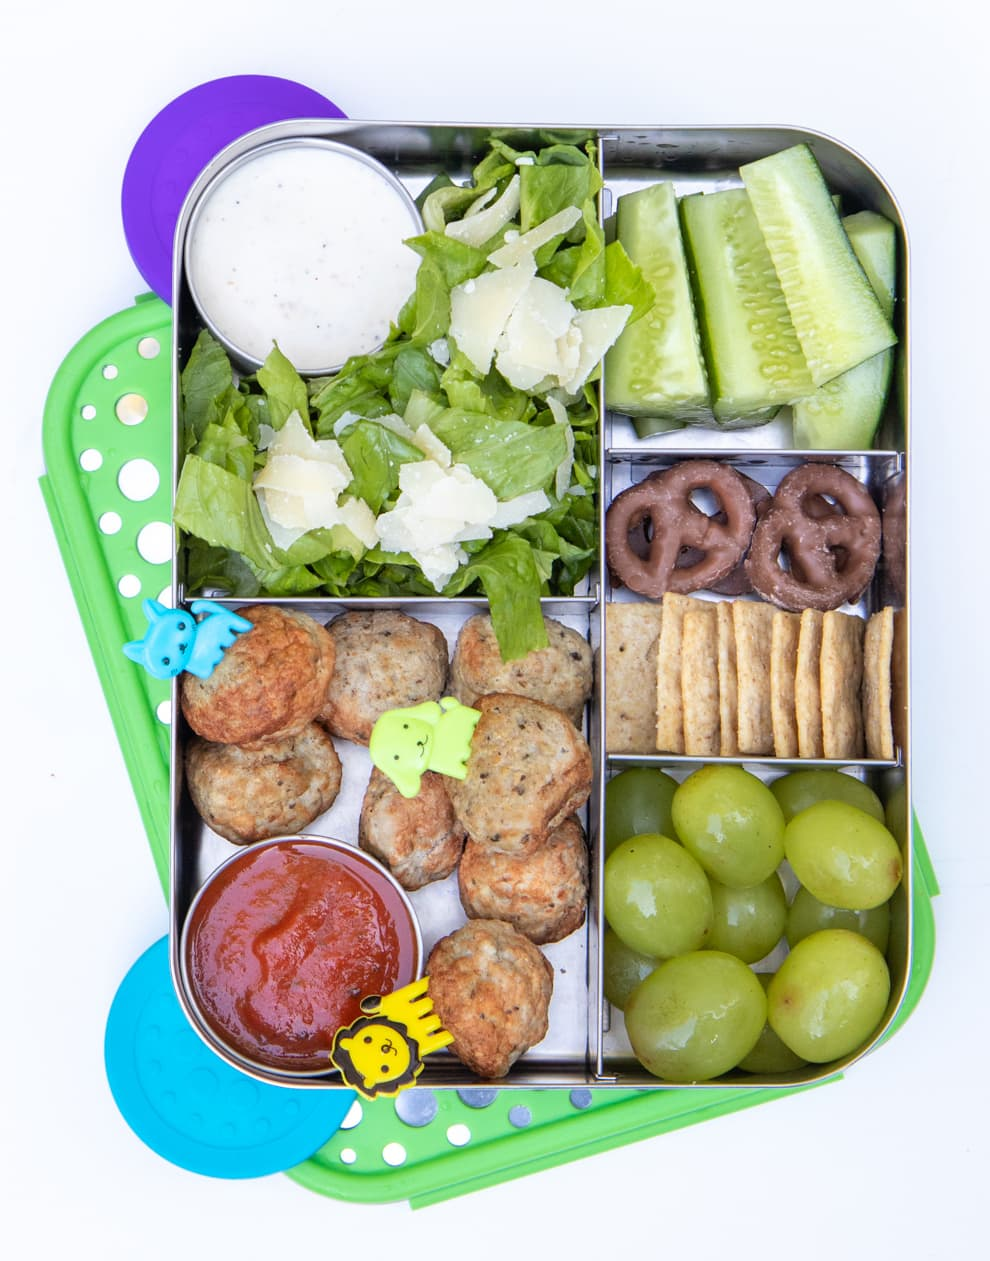 Stainless steel divided lunch box filled with meatballs, grapes, celery, pretzels, salad, and crackers.